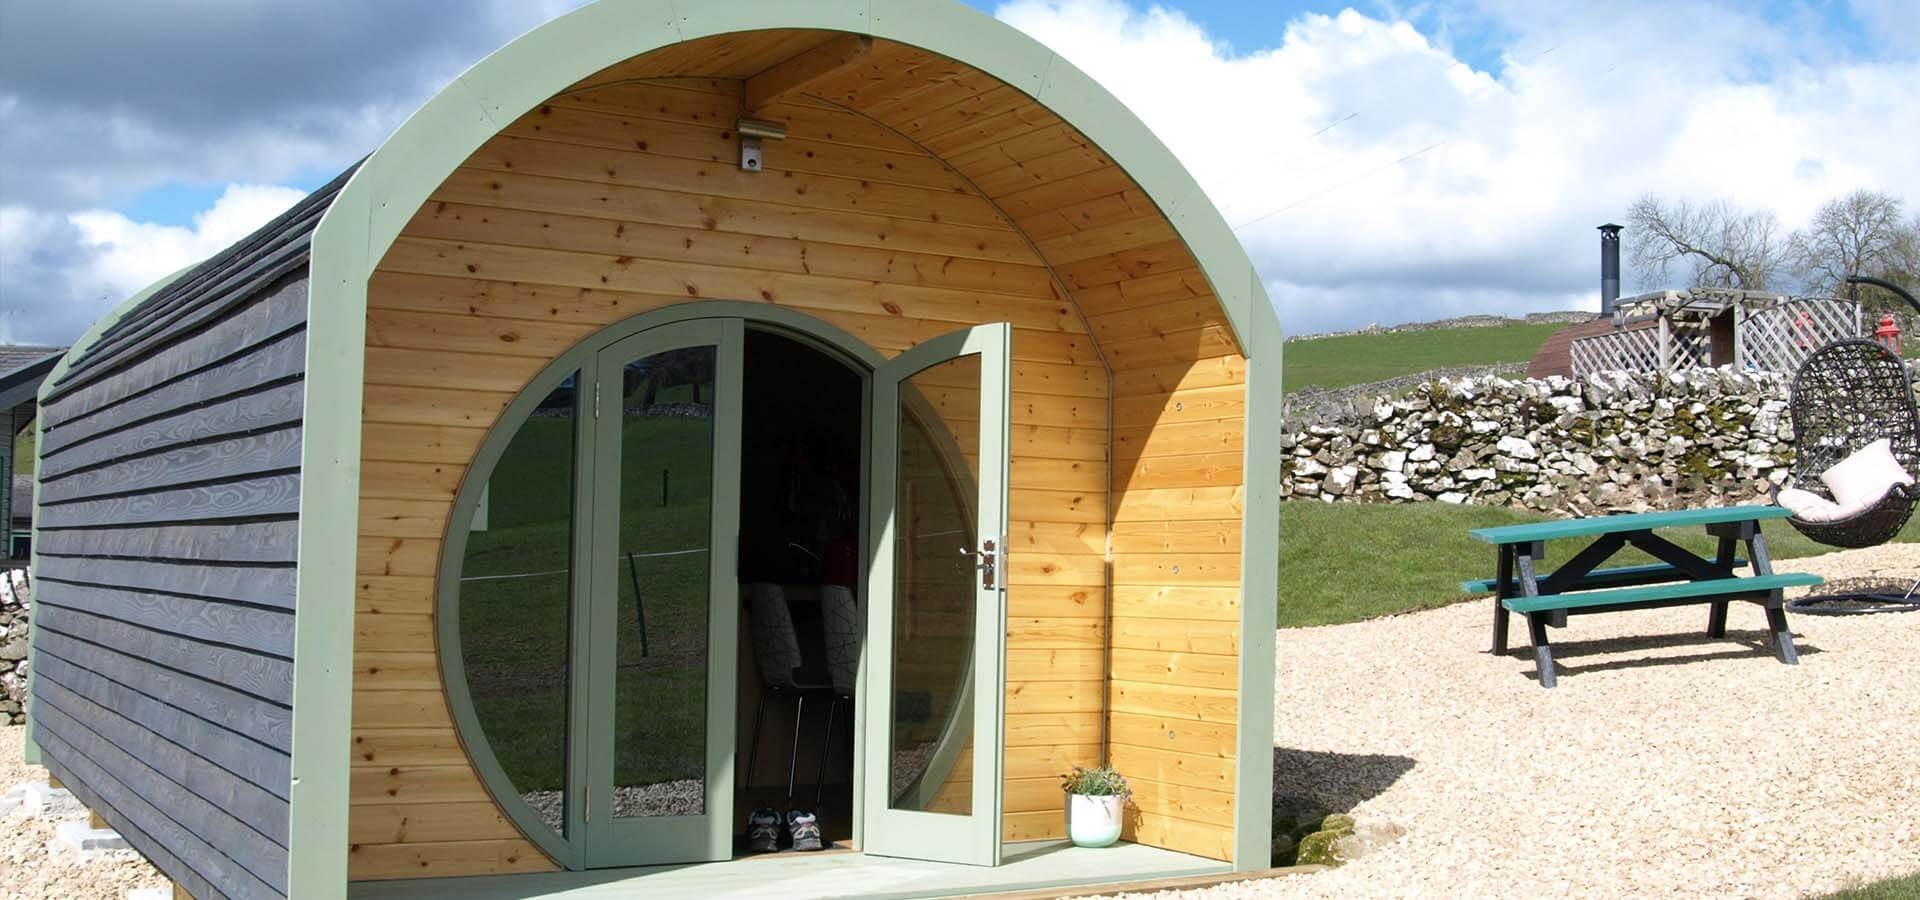 Gorgeous glamping pod at Hoe Grange